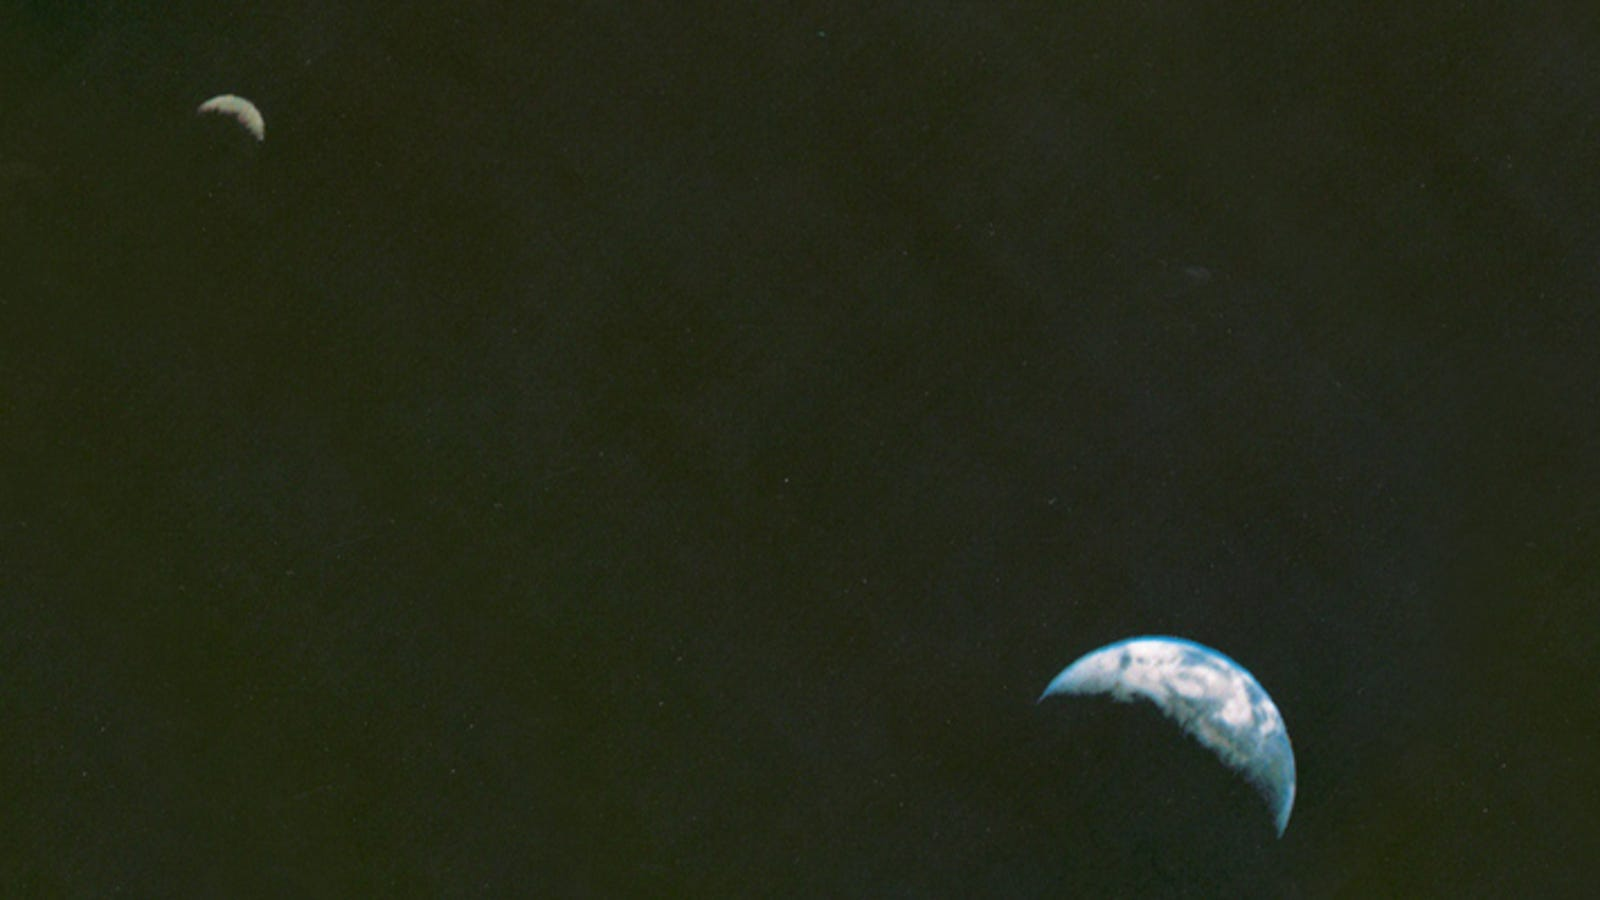 Voyager's Iconic Shot of Earth and Moon Shows How Far Space Photography Has Come